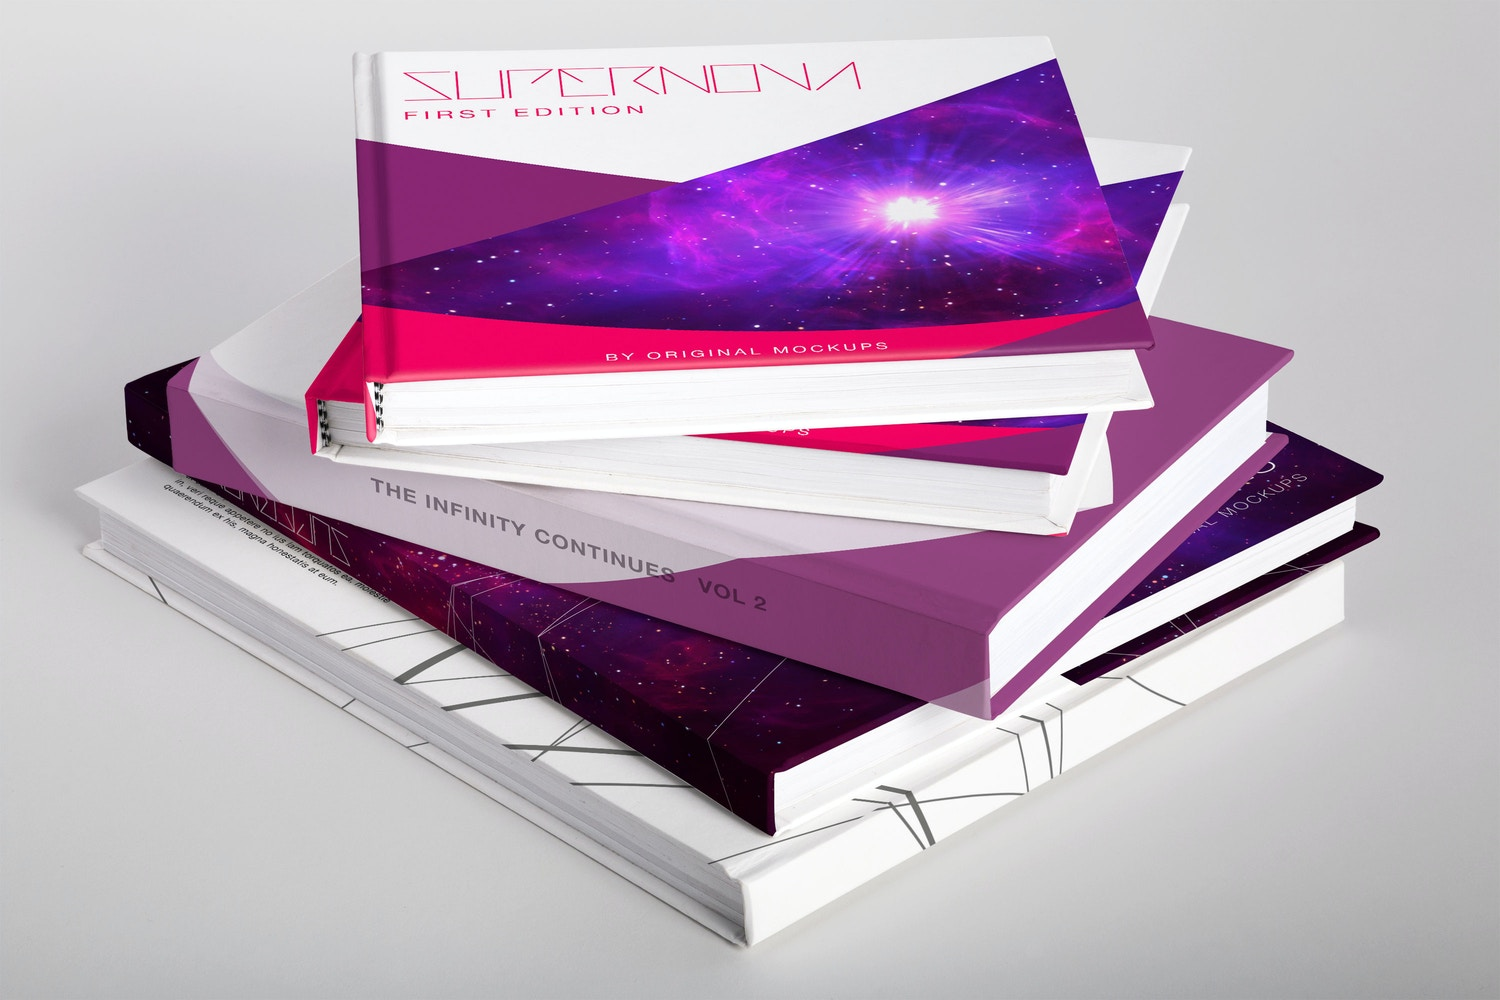 Others Books PSD Mockup 01 por Original Mockups en Original Mockups